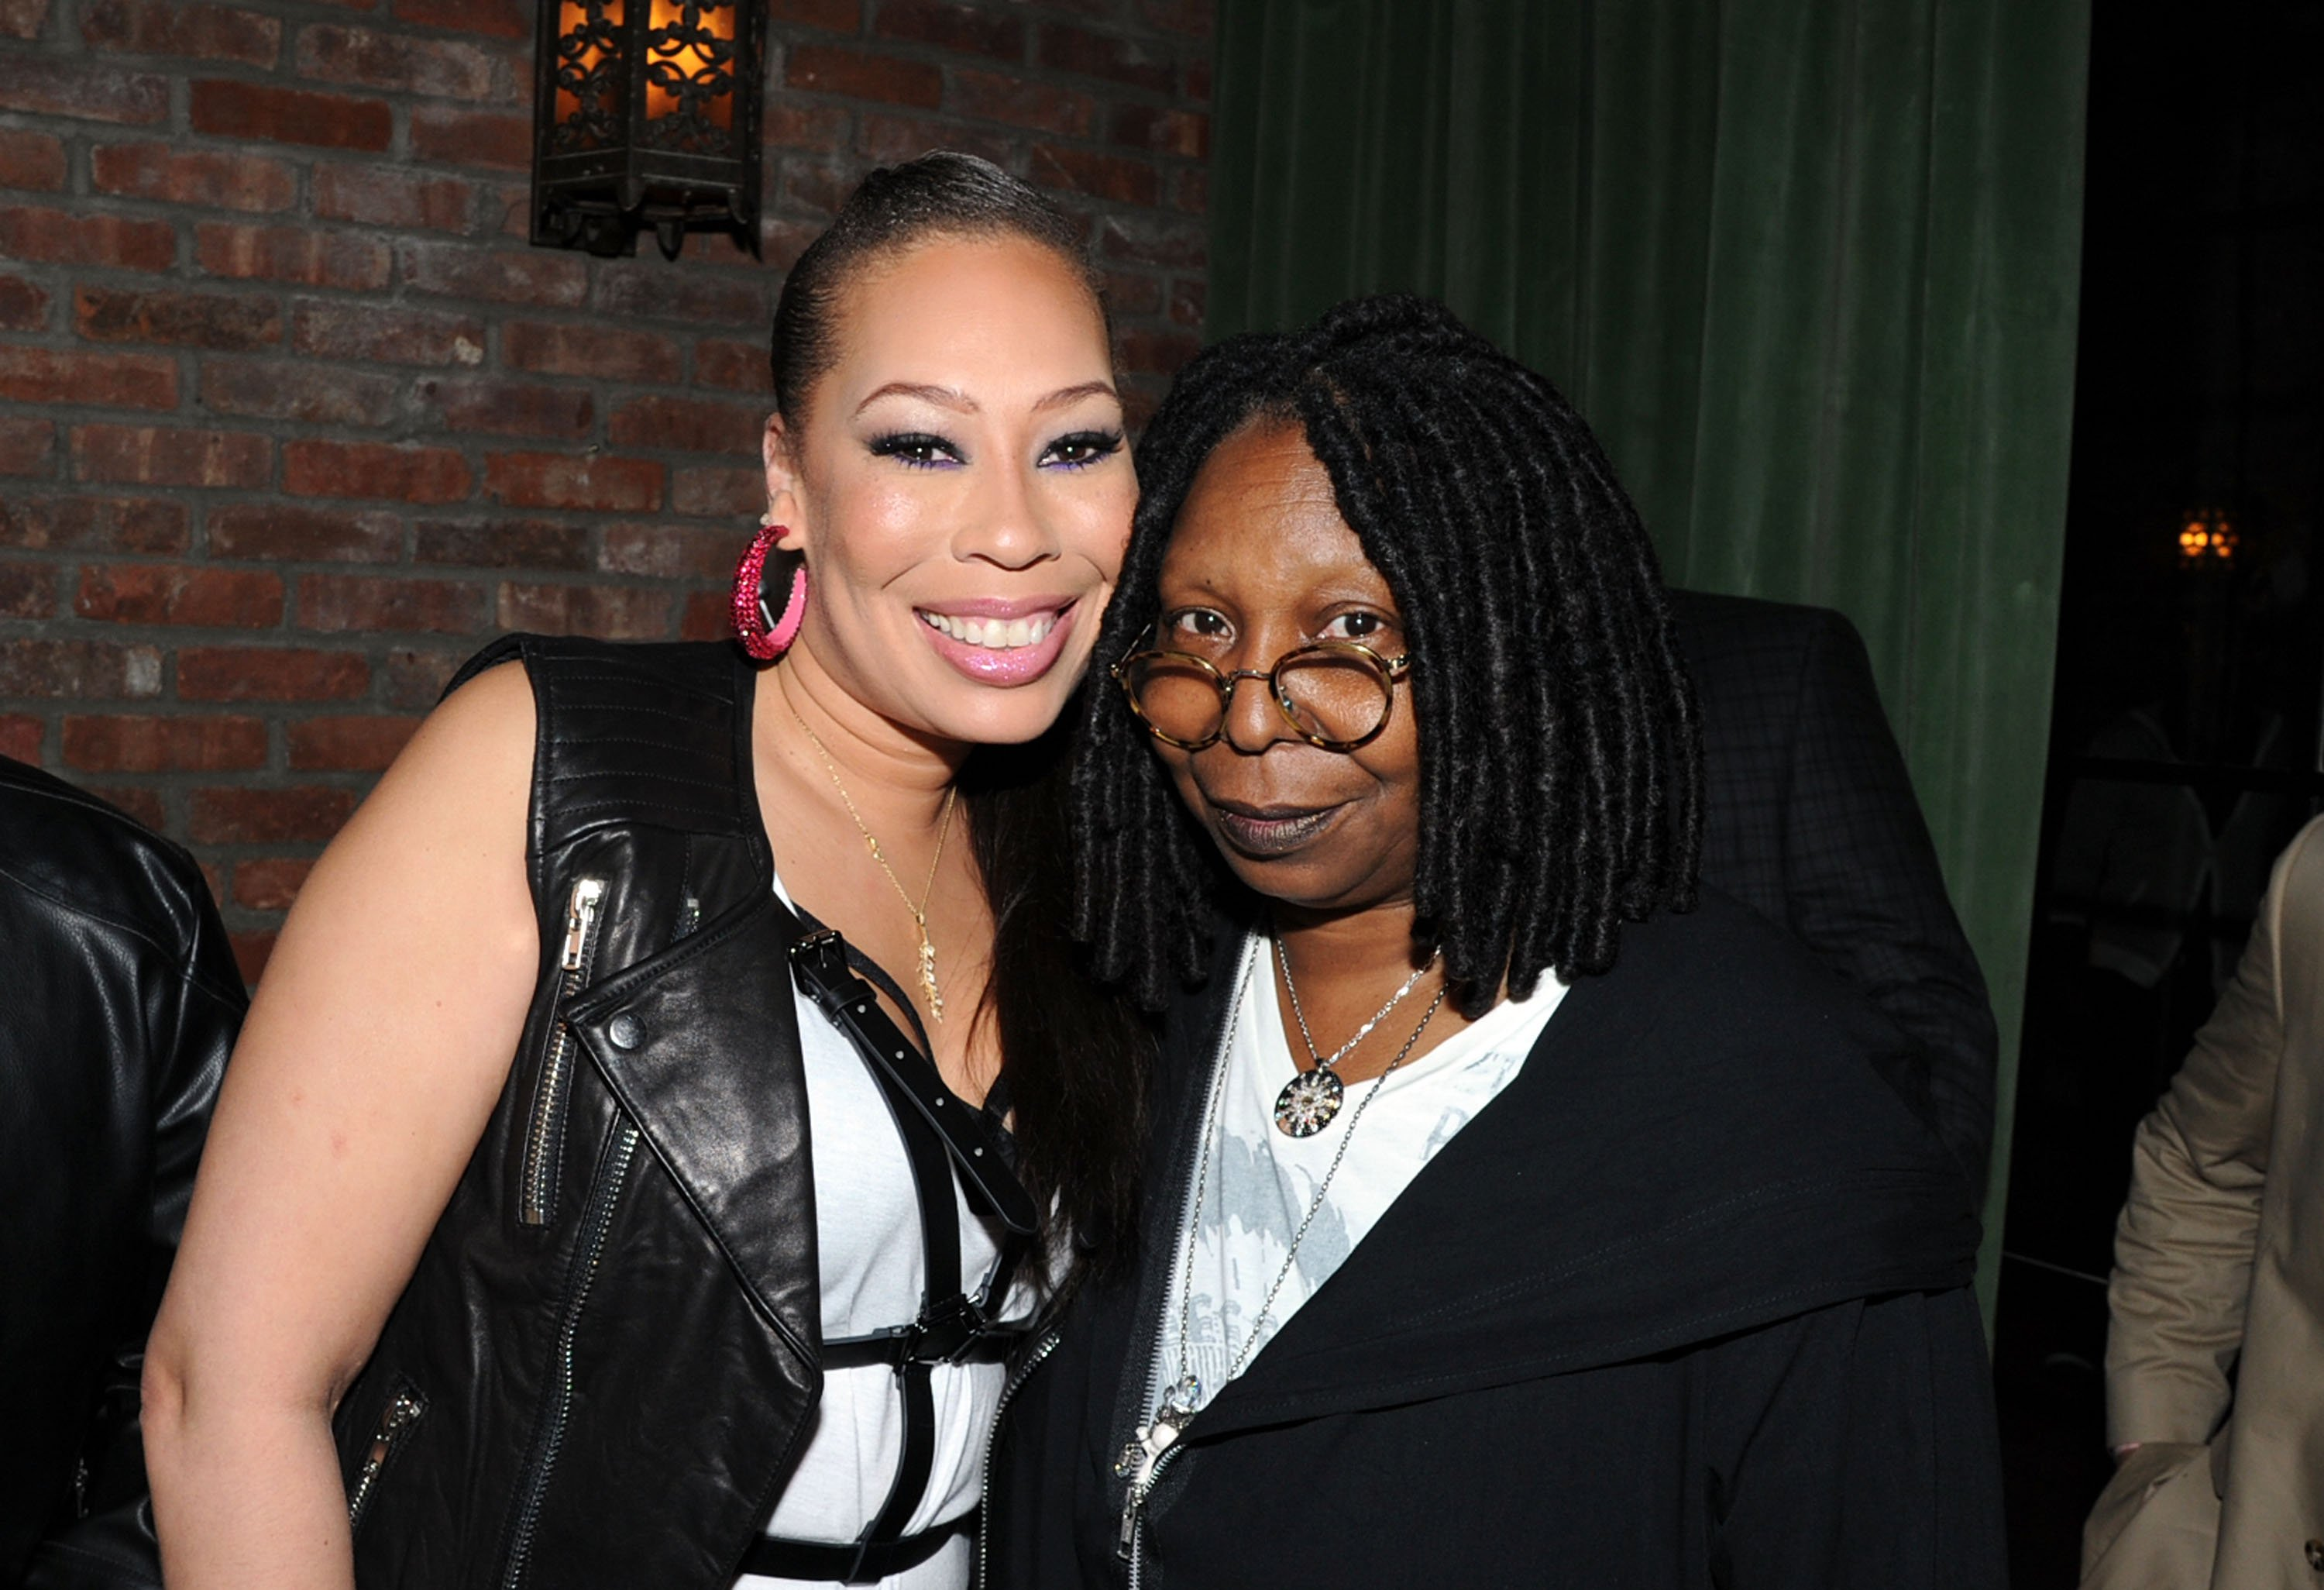 Alex Martin & Whoopi Goldberg at Alex Martin's Birthday Celebration on May 9, 2014 in New York City | Photo: Getty Images